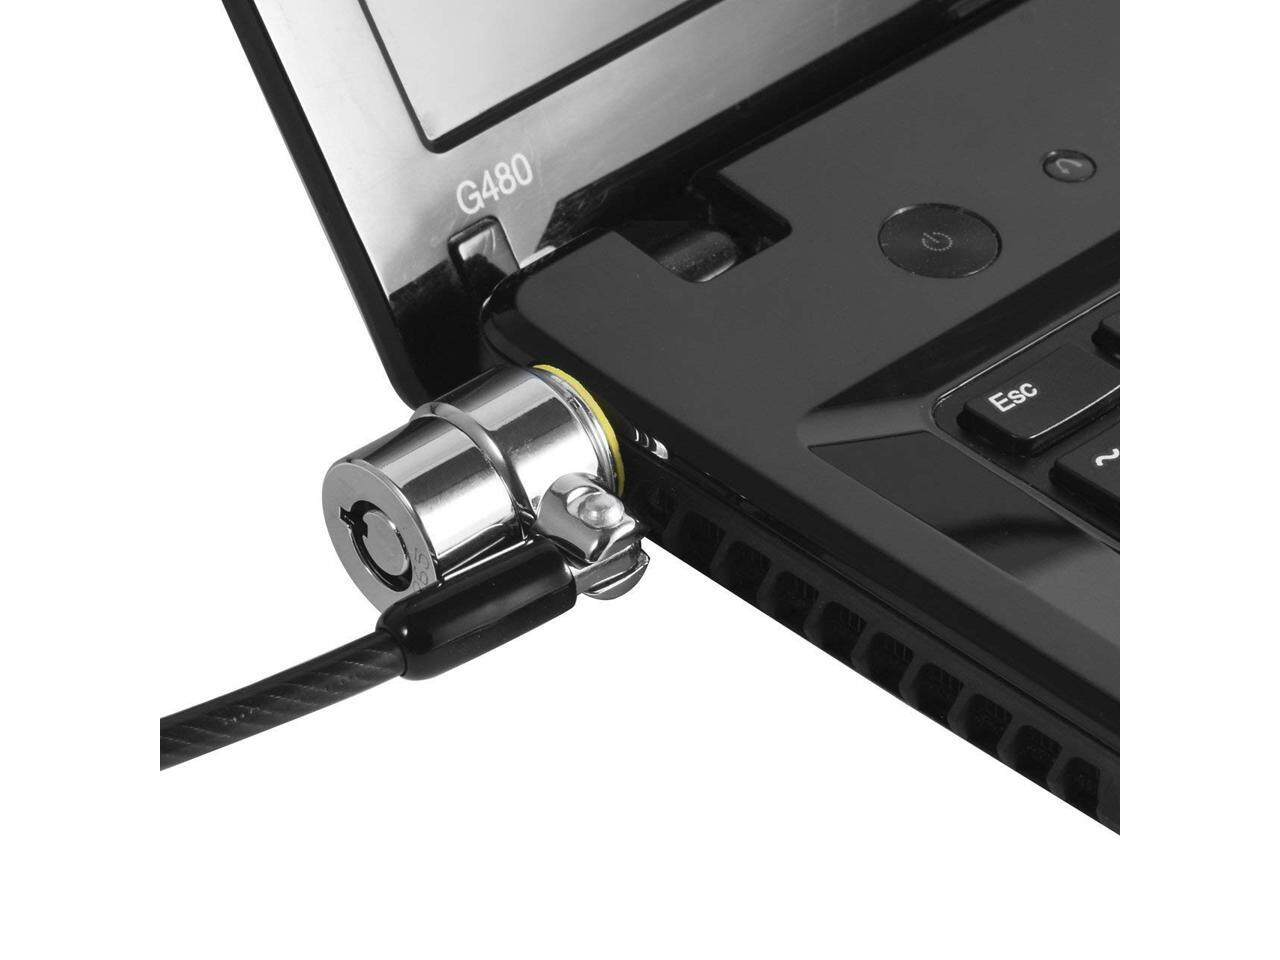 Laptop Cable Lock Hardware Security Cable Lock Anti Theft Lock for iPad Tablet Laptop MacBook and All Other Notebooks and Laptop with Black Anchor